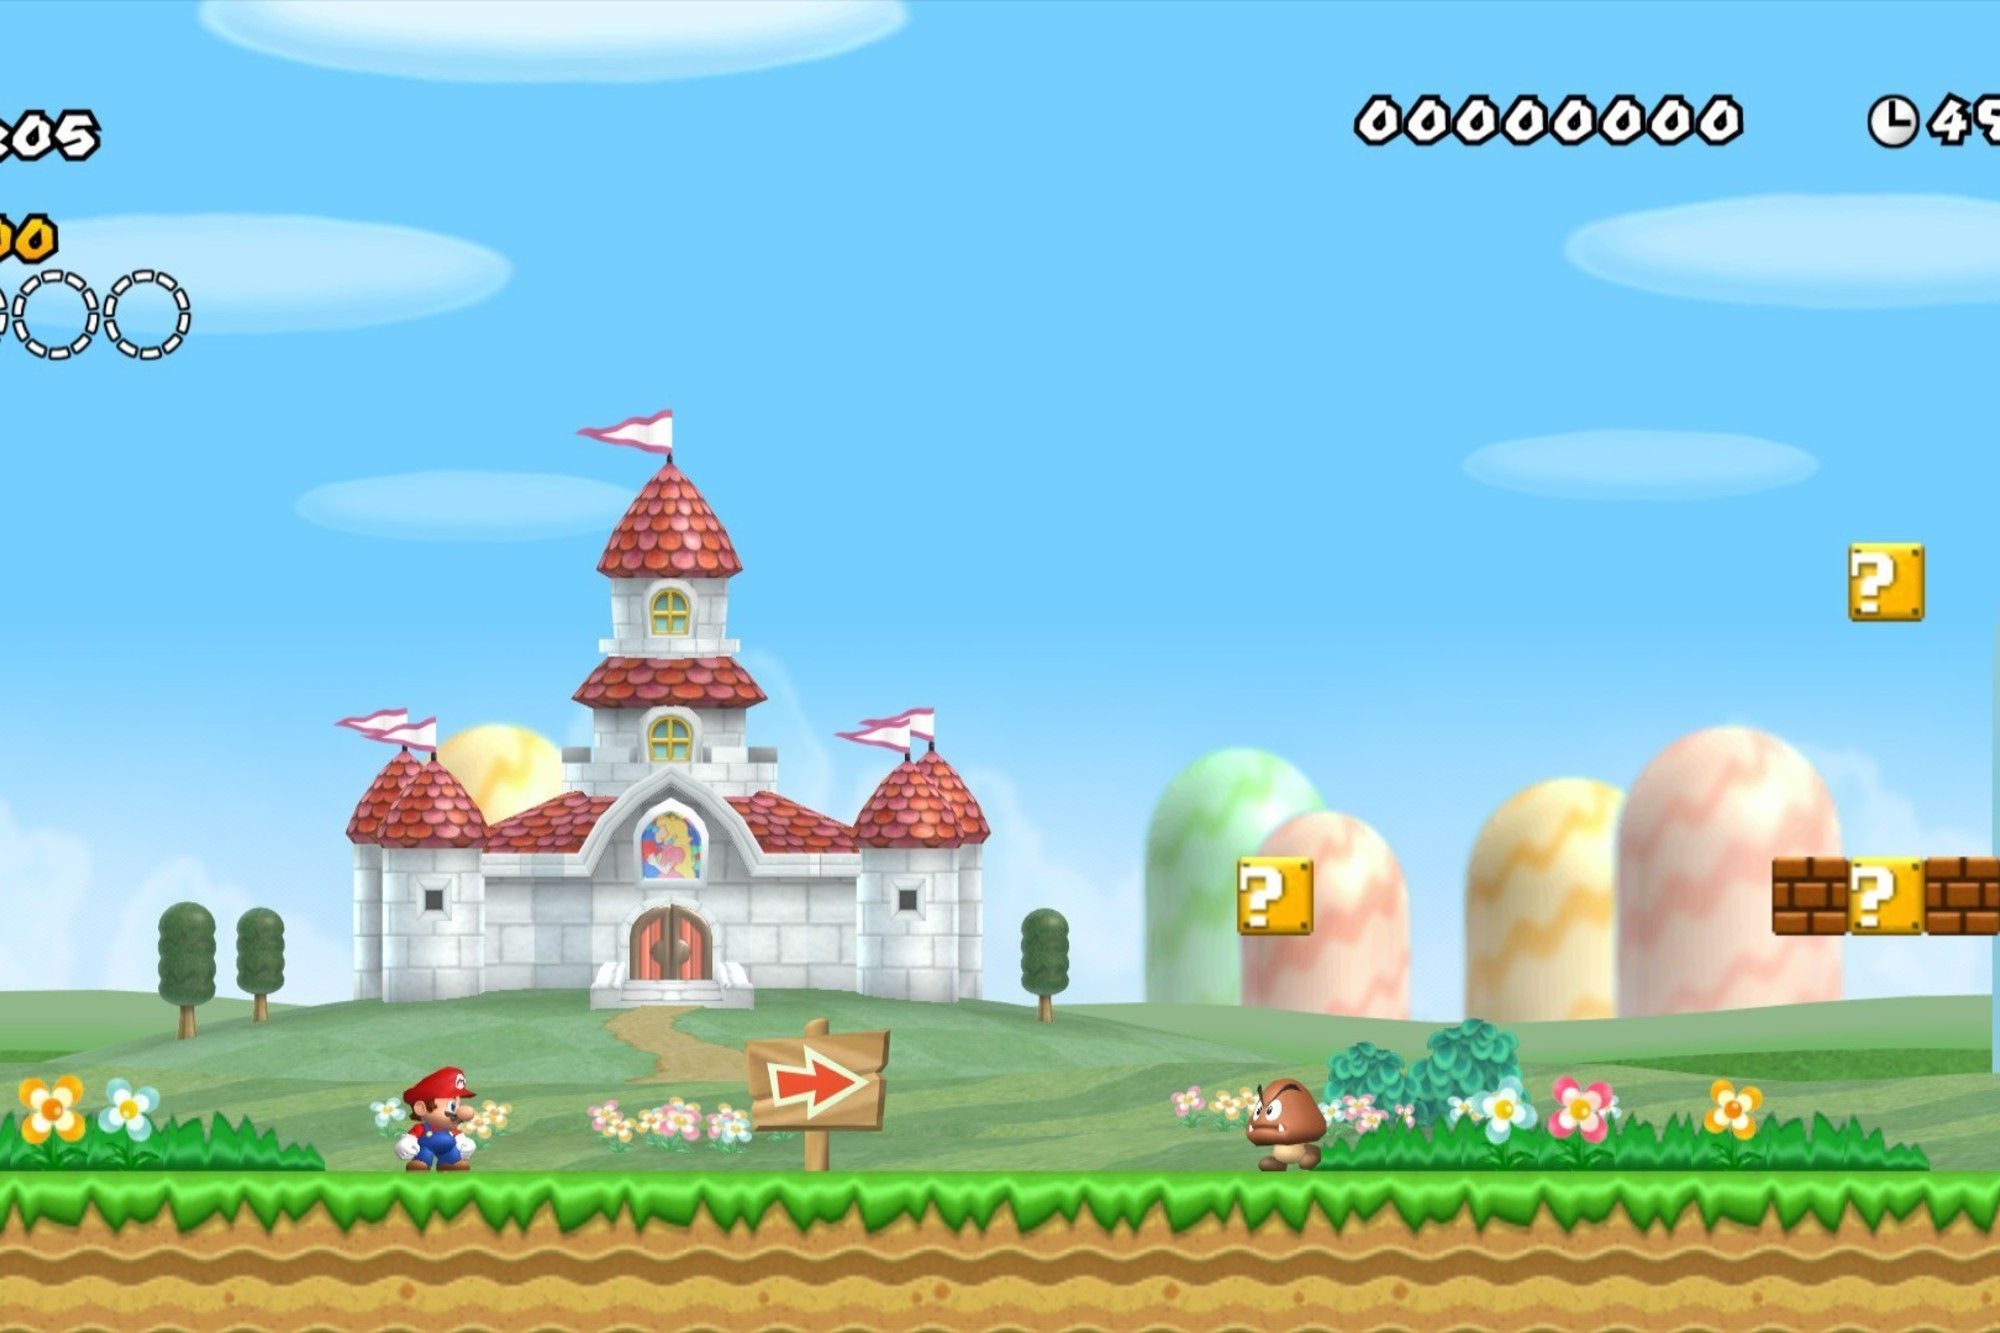 2000x1333 Mushroom kingdom new super mario bros wii wallpaper | AllWallpaper ...